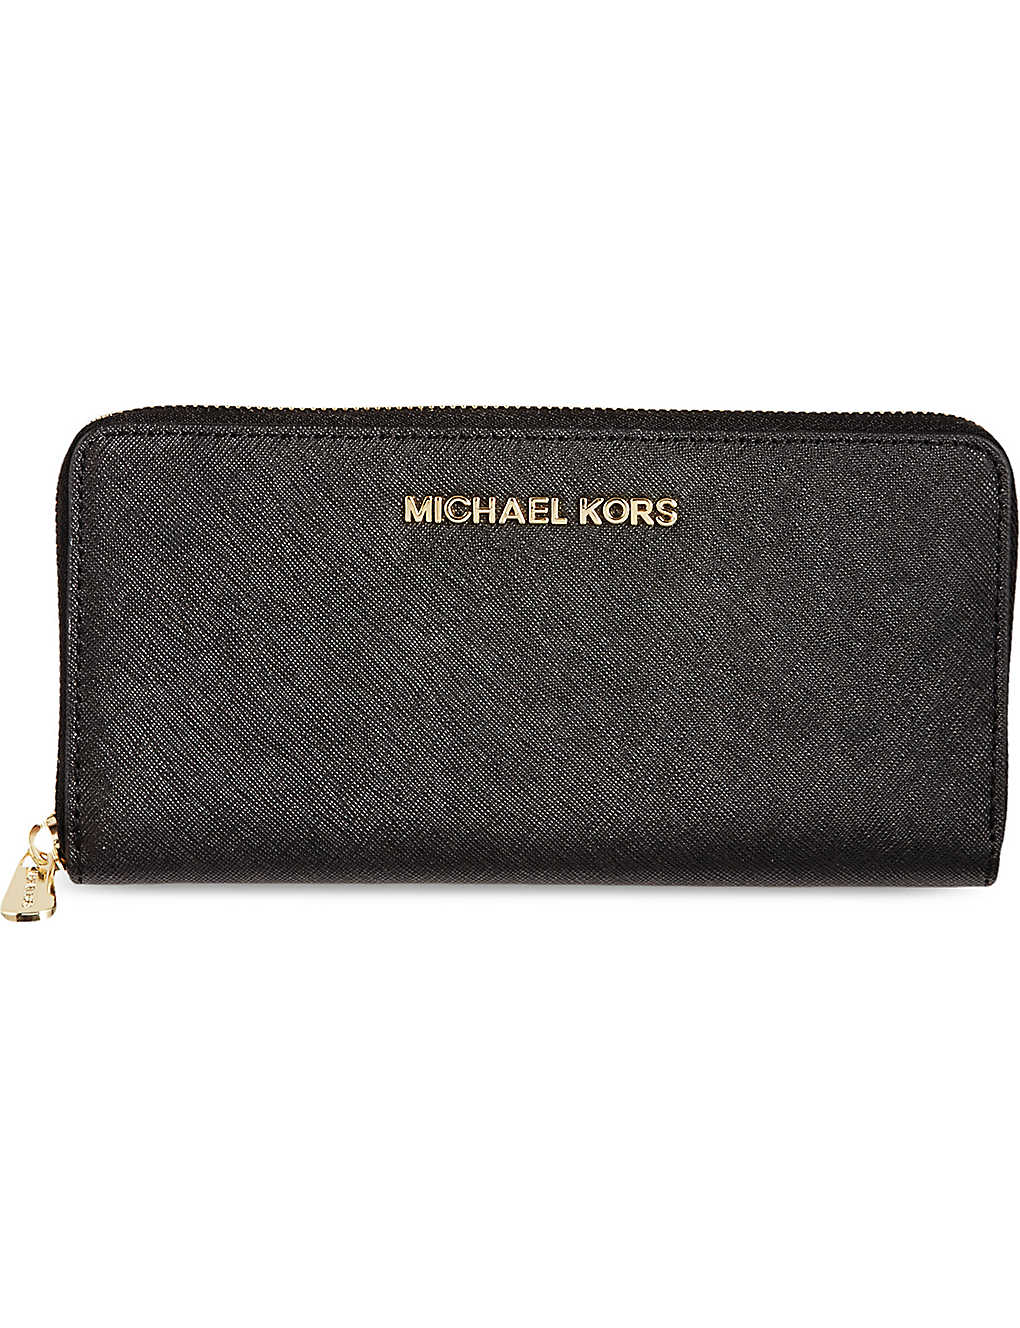 56d1019201d0 MICHAEL MICHAEL KORS - Jet Set saffiano leather wallet | Selfridges.com